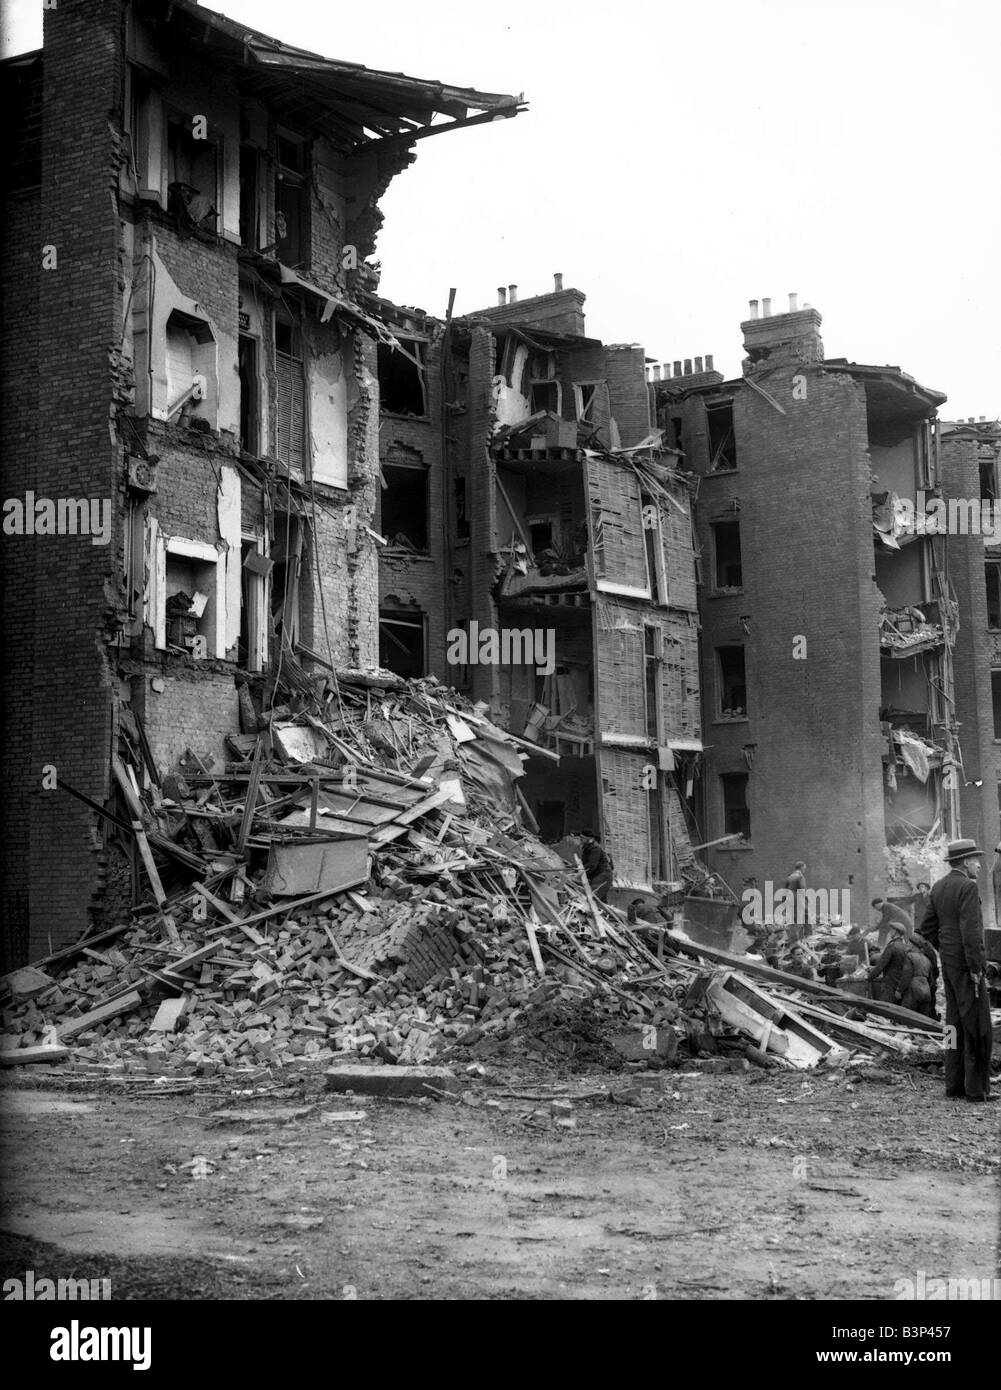 WW2 Air Raid Damage Maida Vale Bomb damage at Maida Vale Buildings collapse in a pile of rubble after the air raid - Stock Image